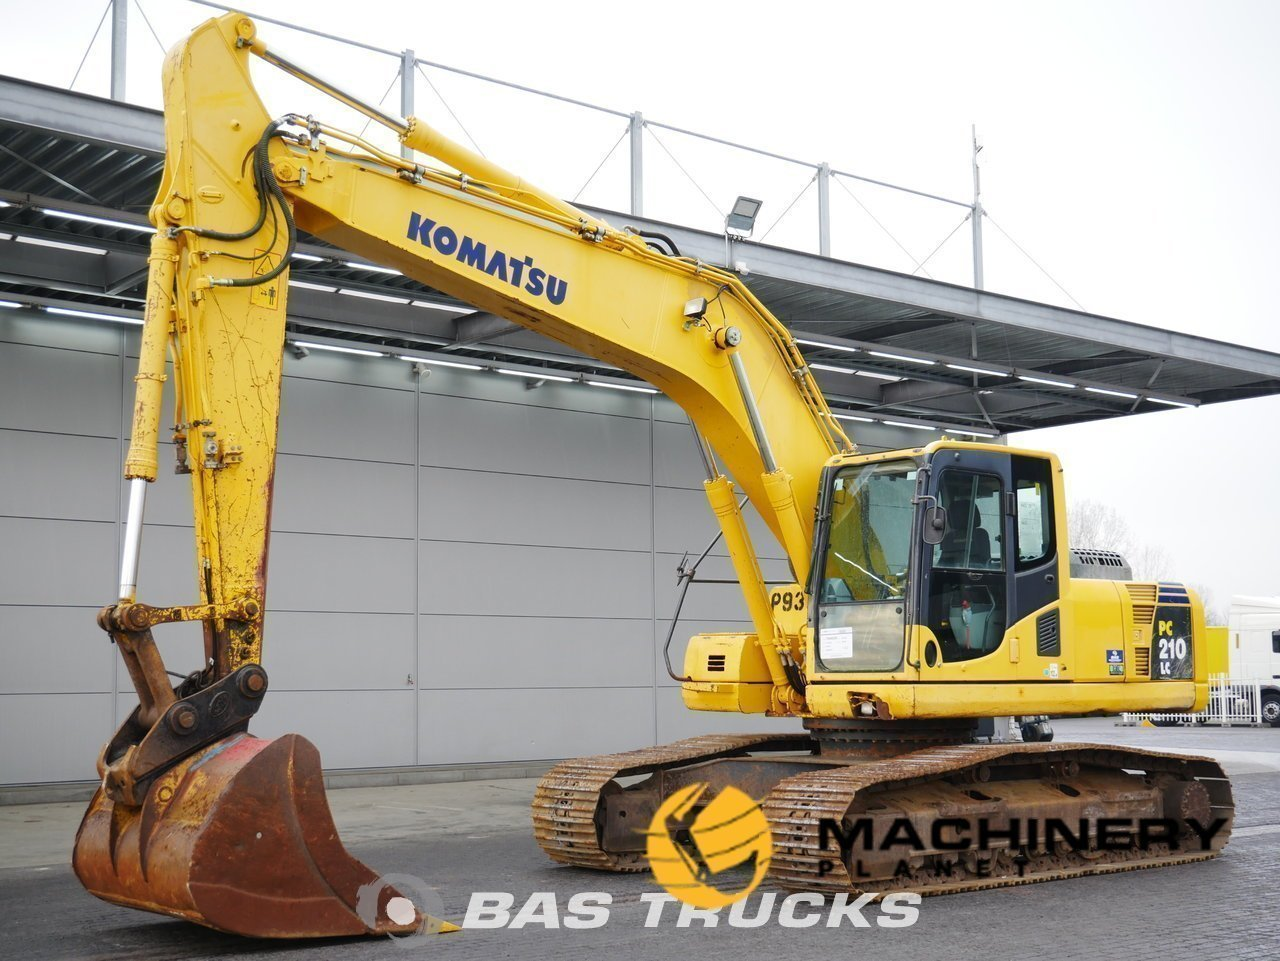 Used-Construction-equipment-Komatsu-PC210-Track-2012_142482_1-1554113287433_5ca1e30769c0c-1.jpg